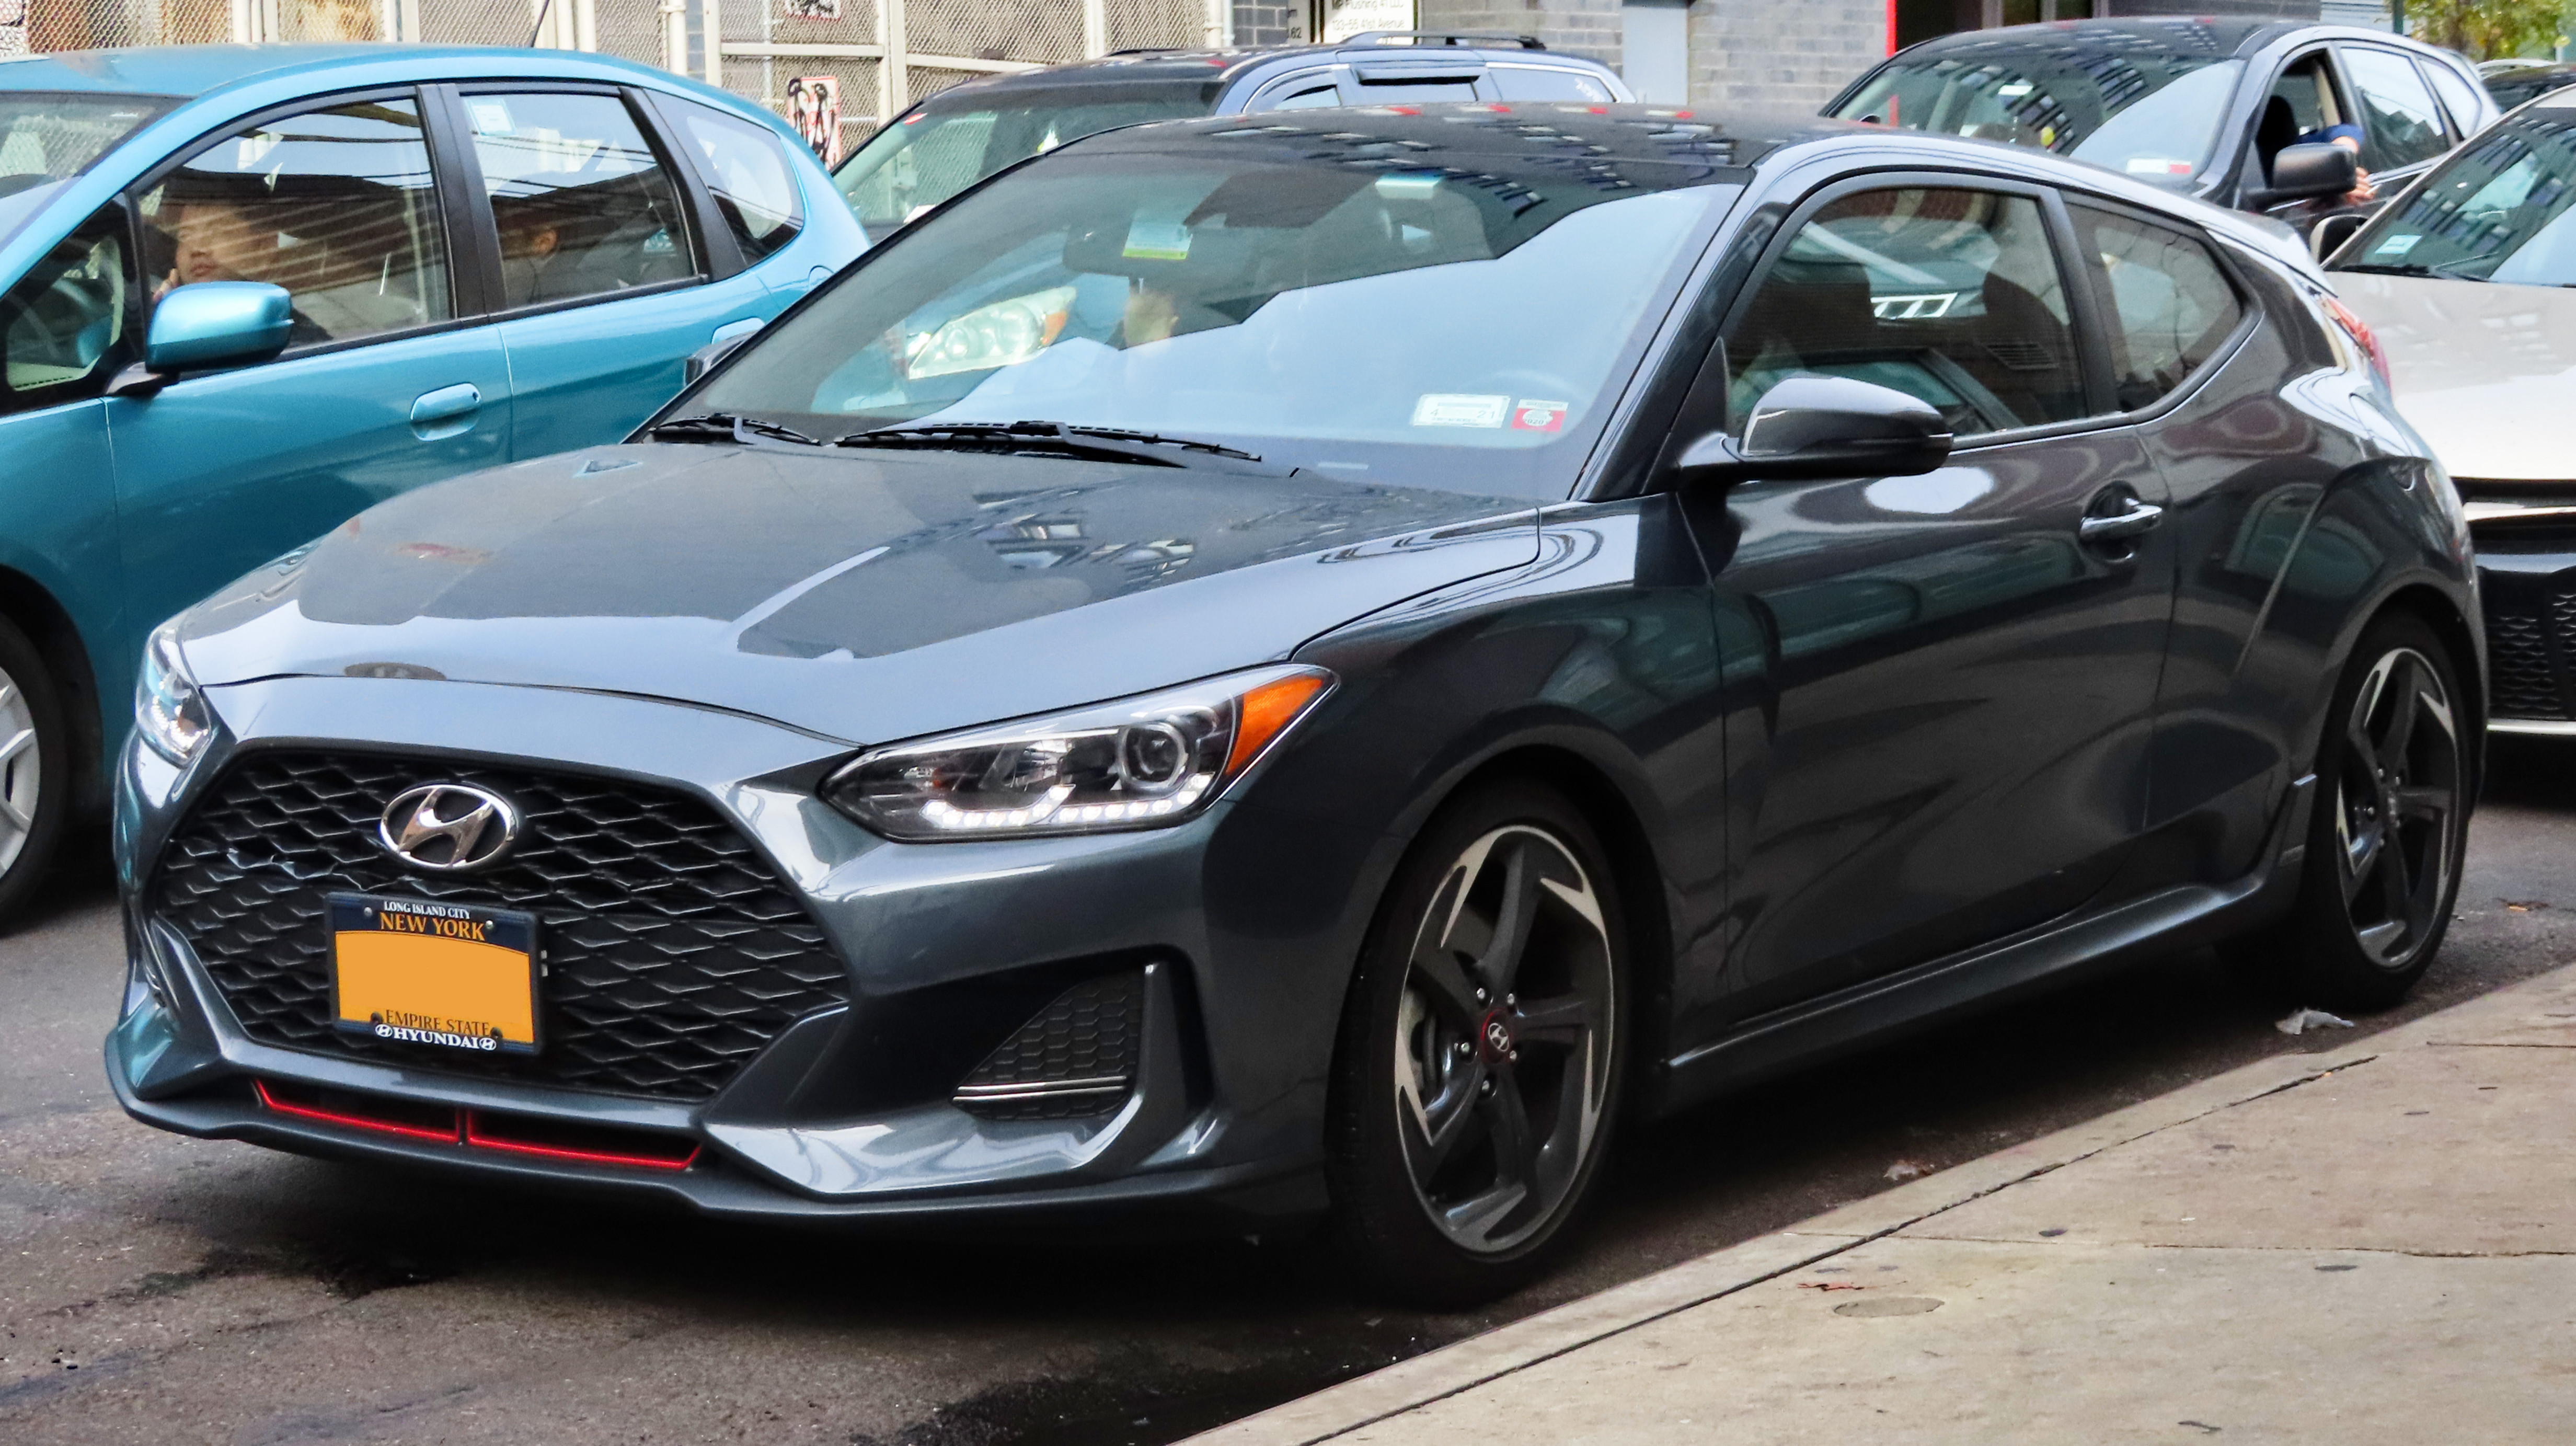 File:2019 Hyundai Veloster 1.6T, front 11.9.19.jpg - Wikimedia Commons